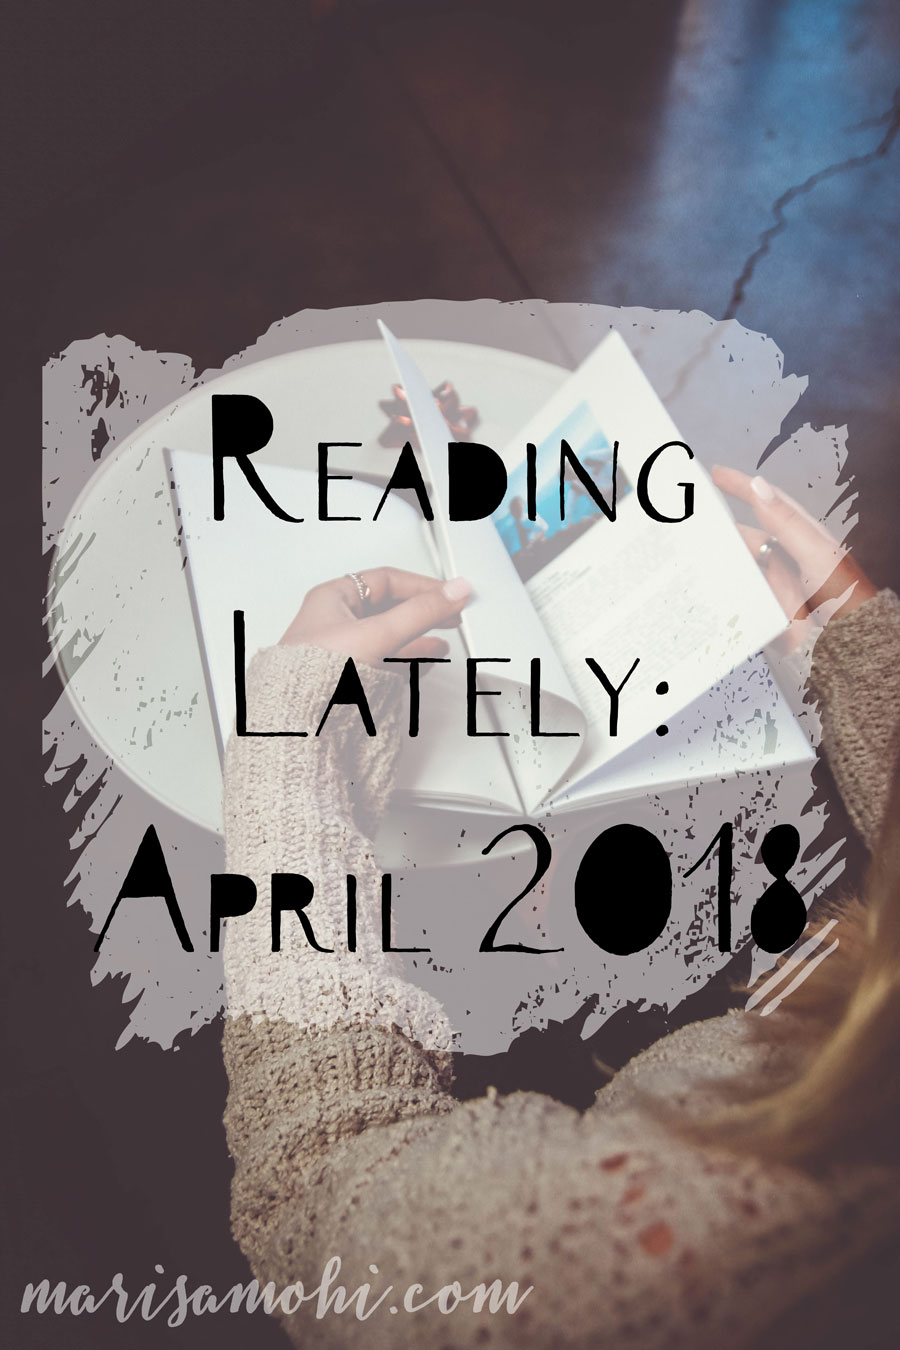 Reading Lately: April 2018